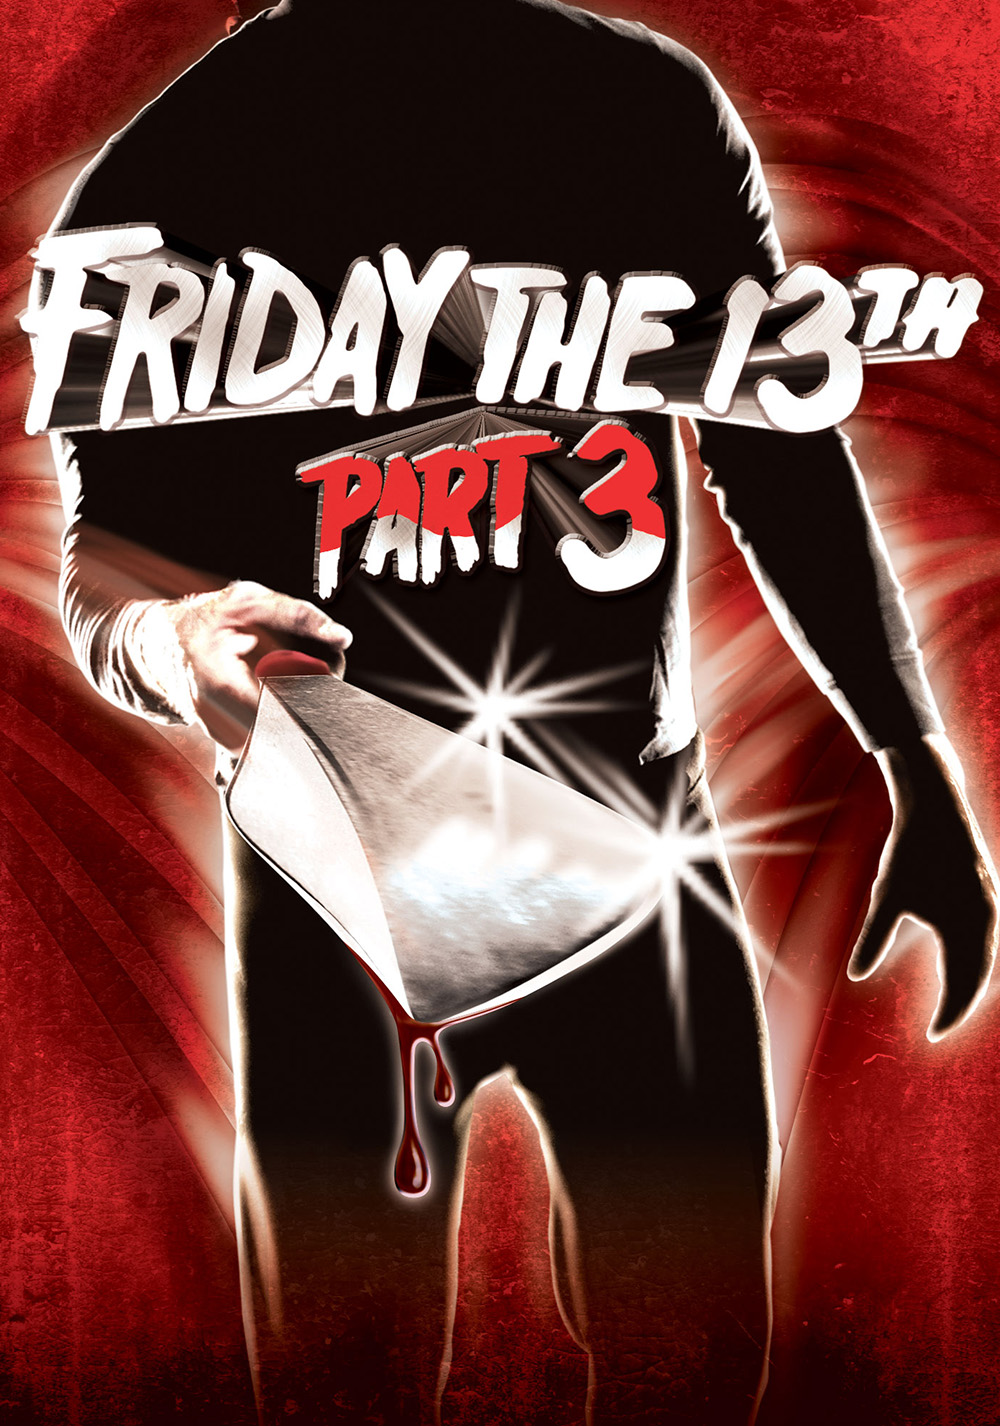 3 part poster design - Friday The 13th Part 3 Movie Poster Image